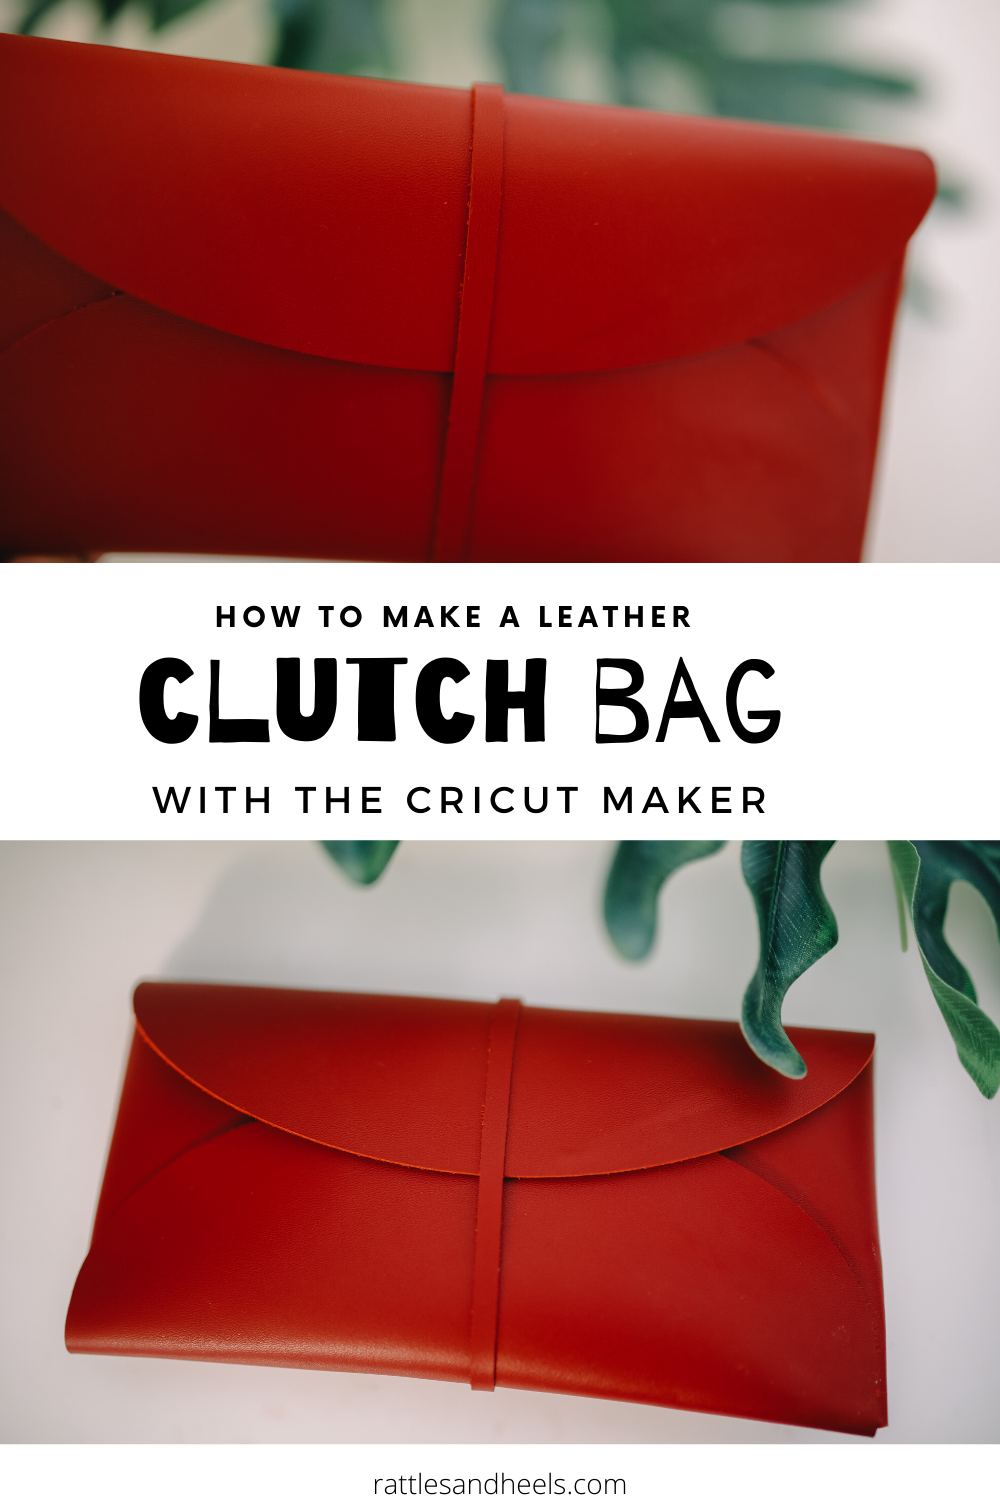 How to Make a Leather Clutch Bag with Cricut Maker.